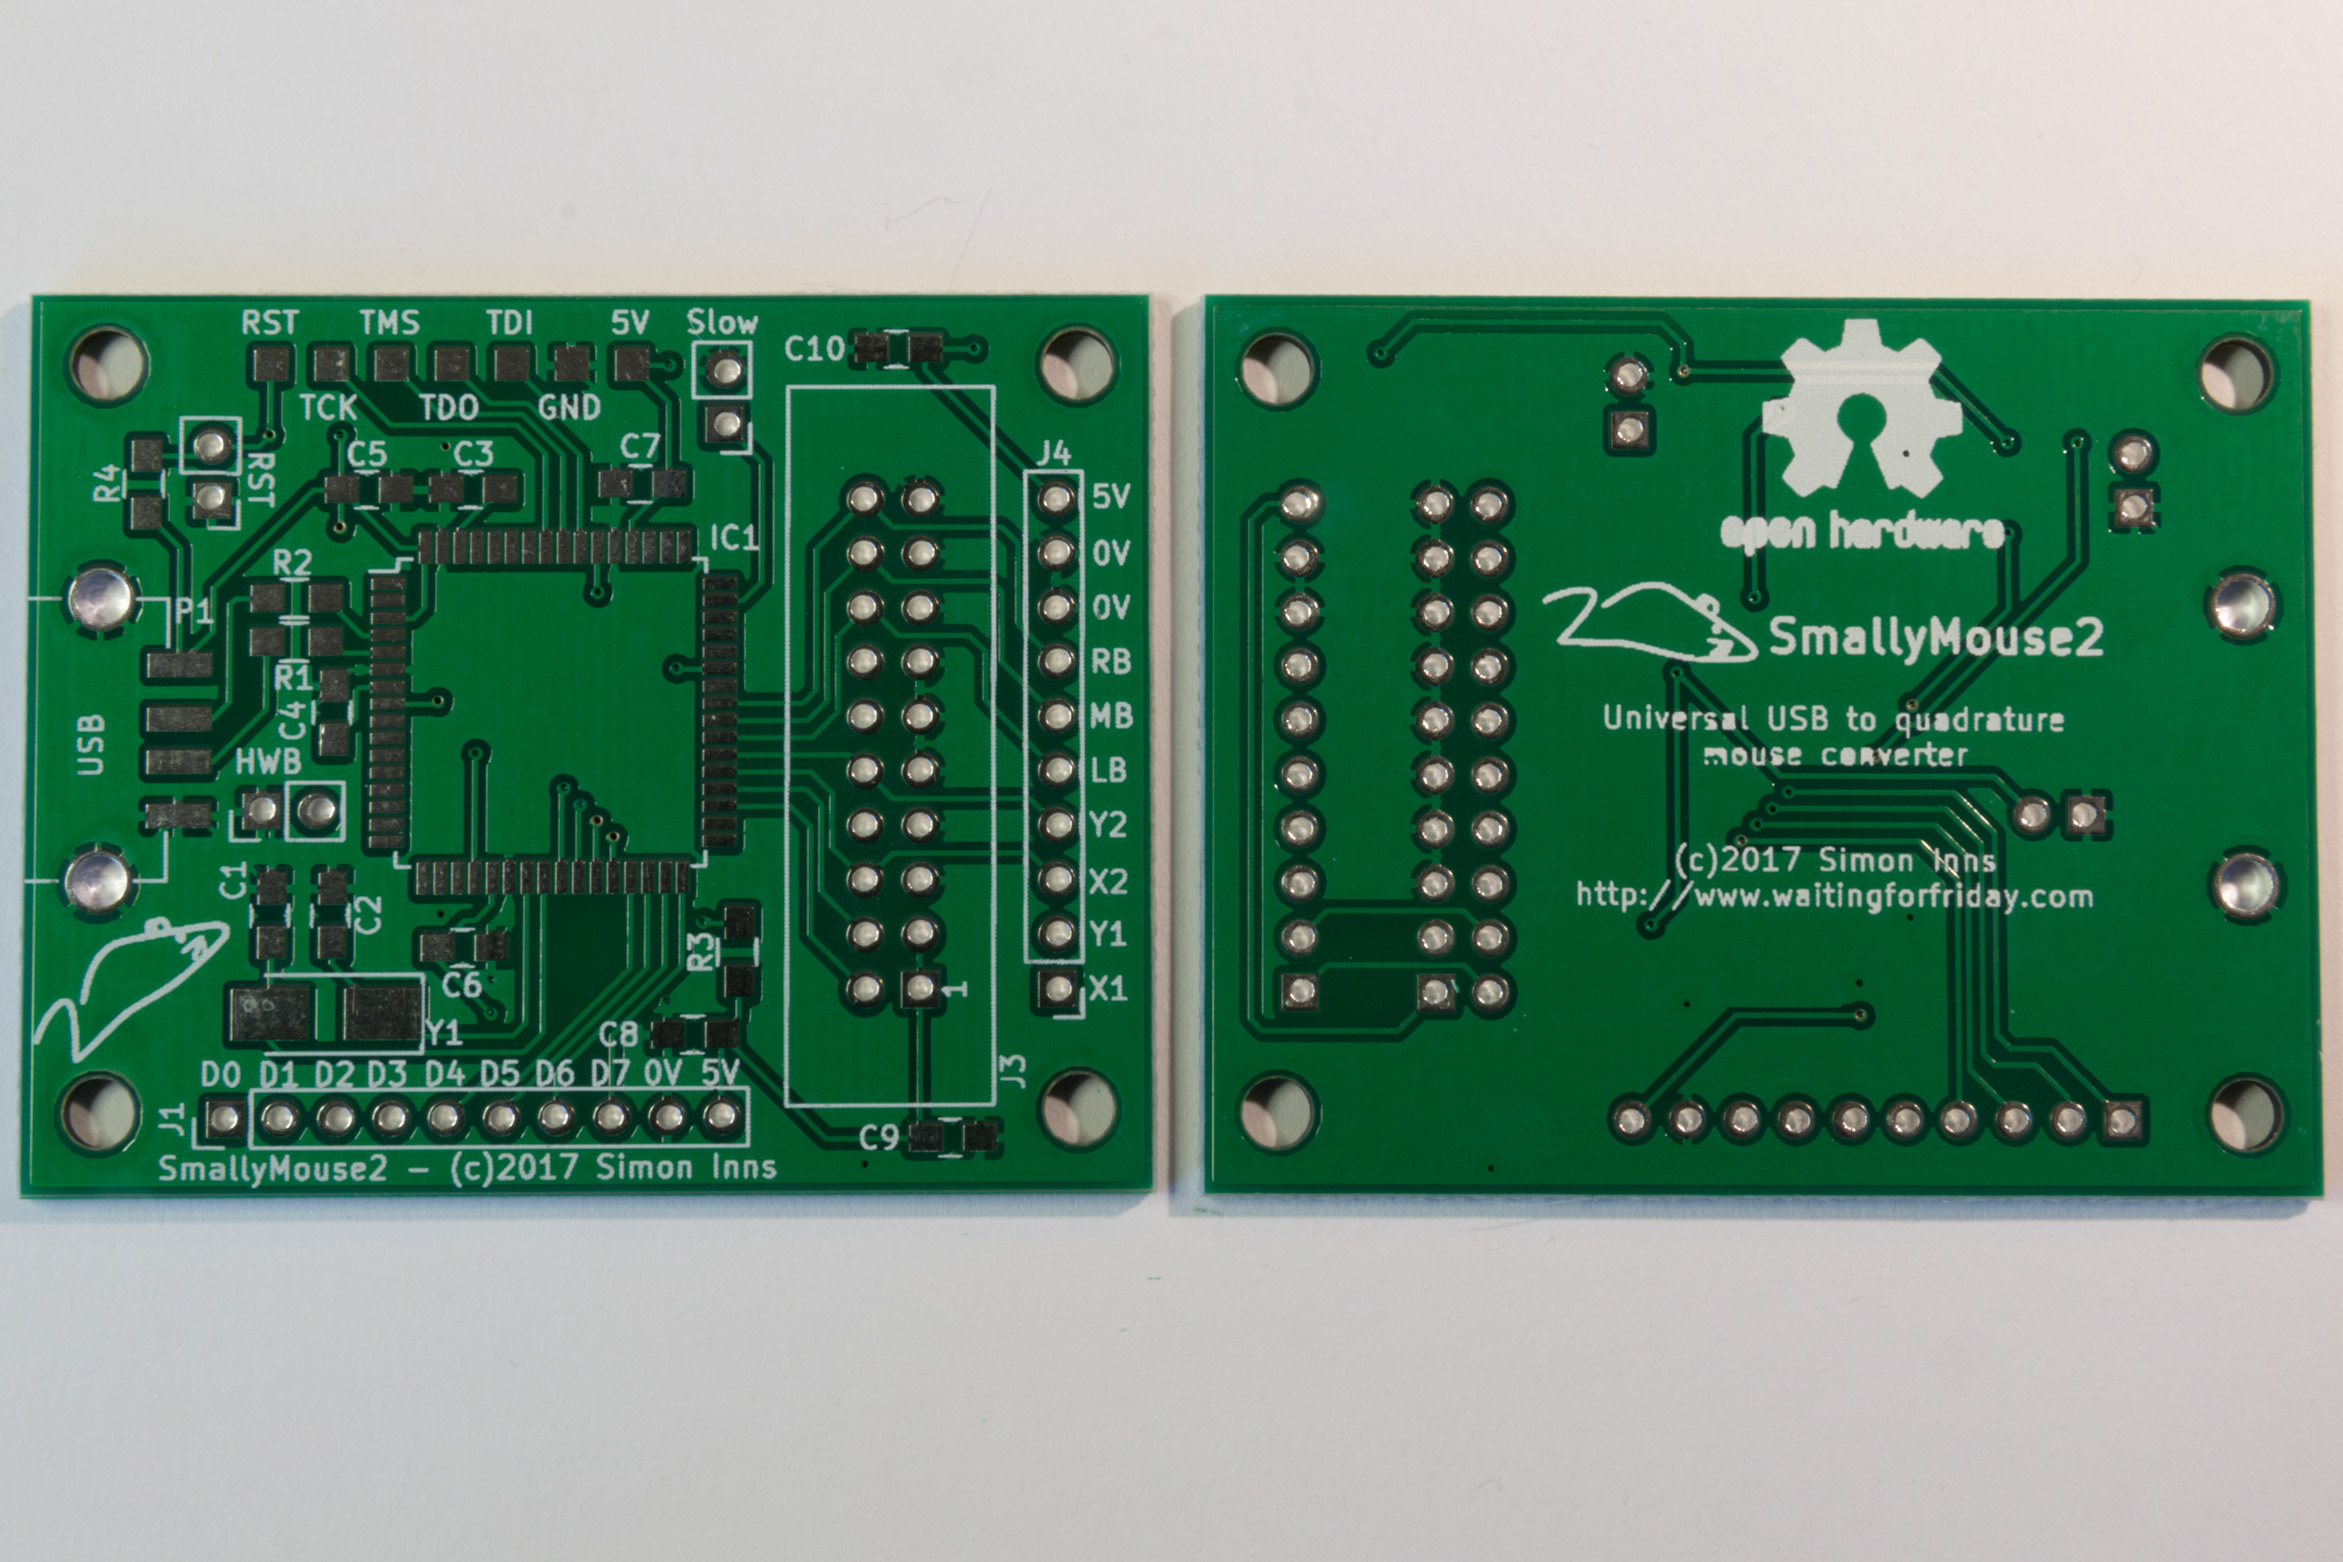 Smallymouse2 Universal Usb To Quadrature Mouse Adapter Waiting Further Charger Circuit Diagram On Wiring For A Pcb Design